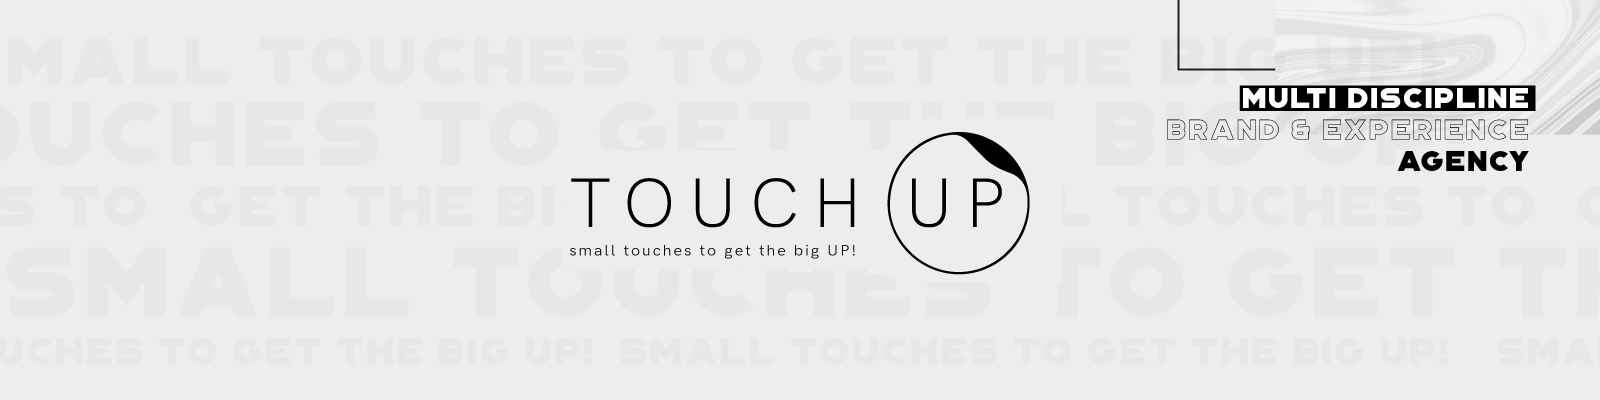 Touch Up banner fotograf